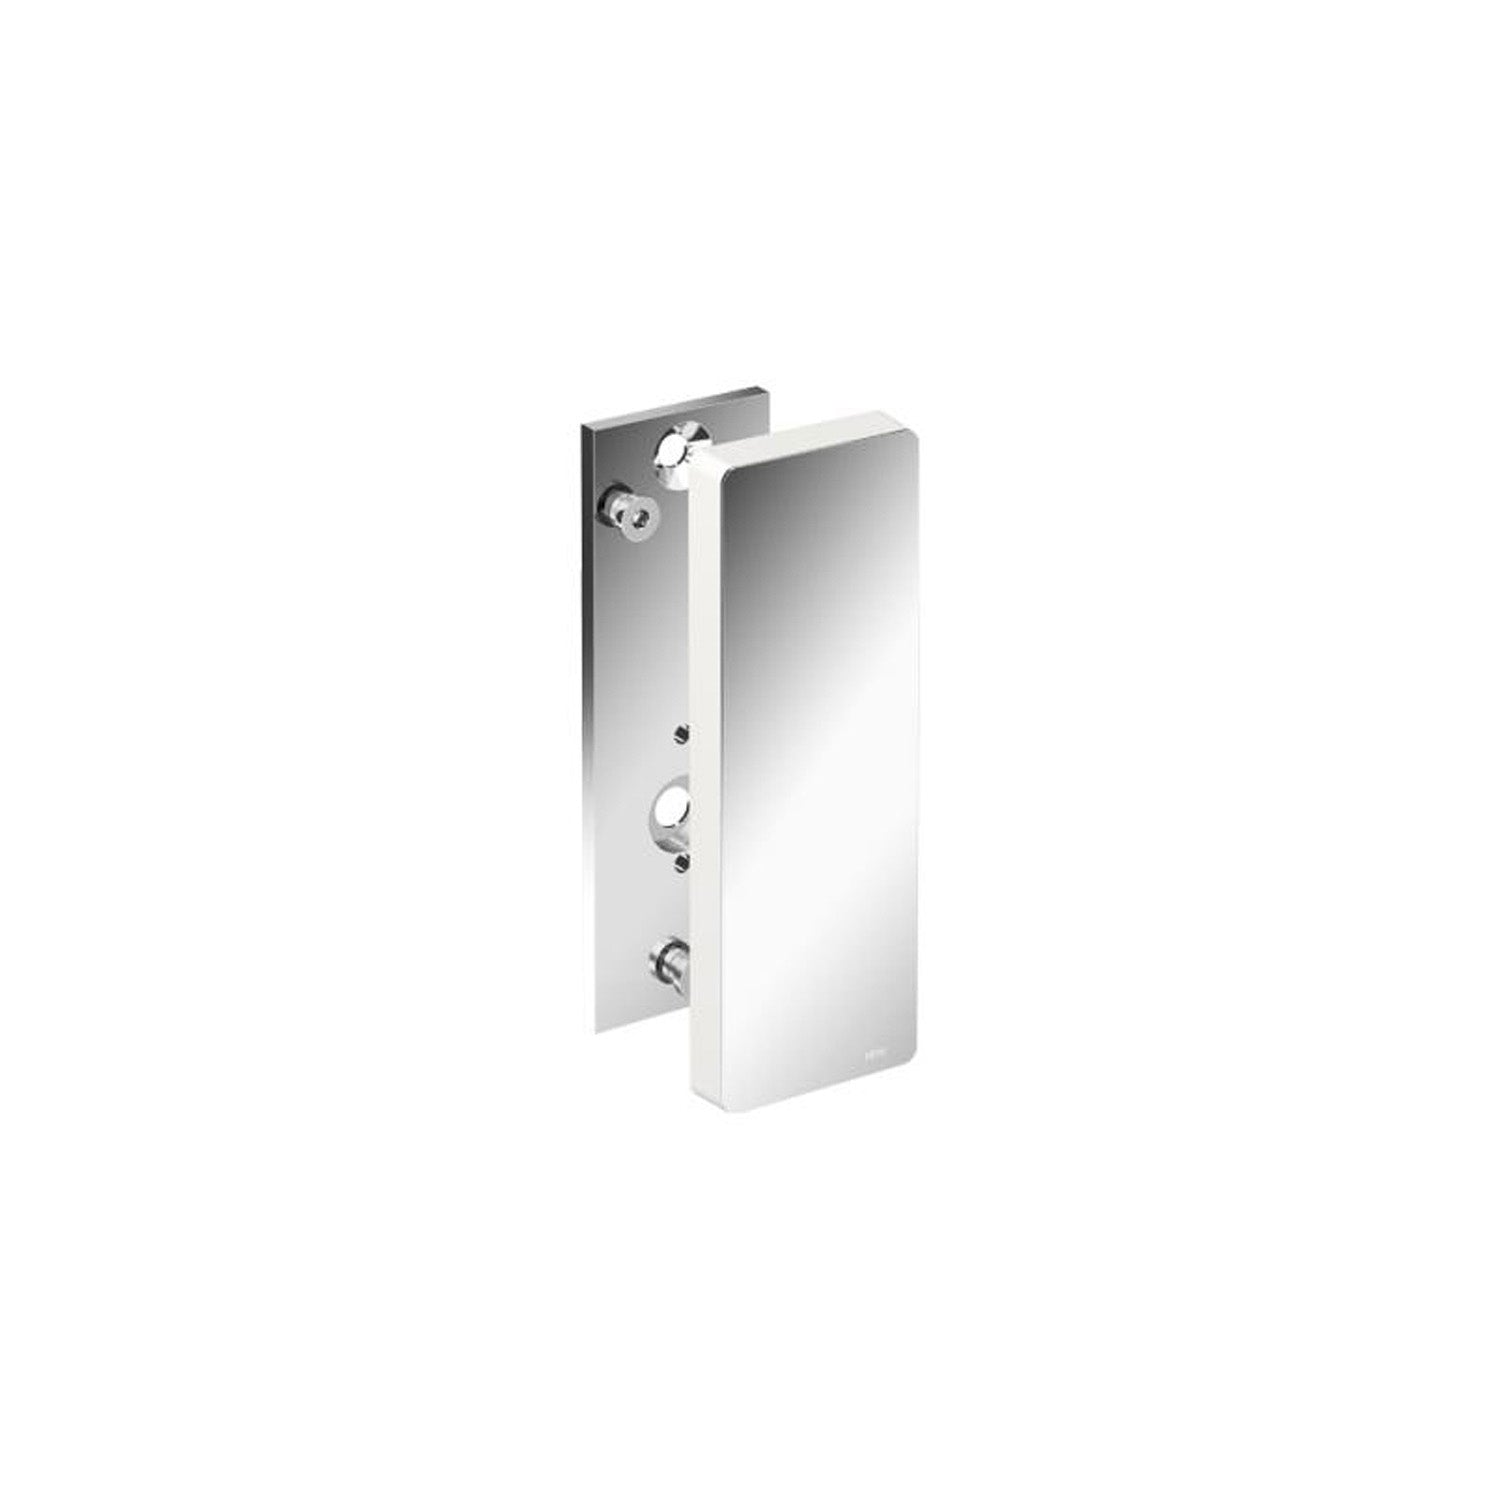 Freestyle Removable Hinged Grab Rail Mounting Plate and Cover with a chrome finish on a white background